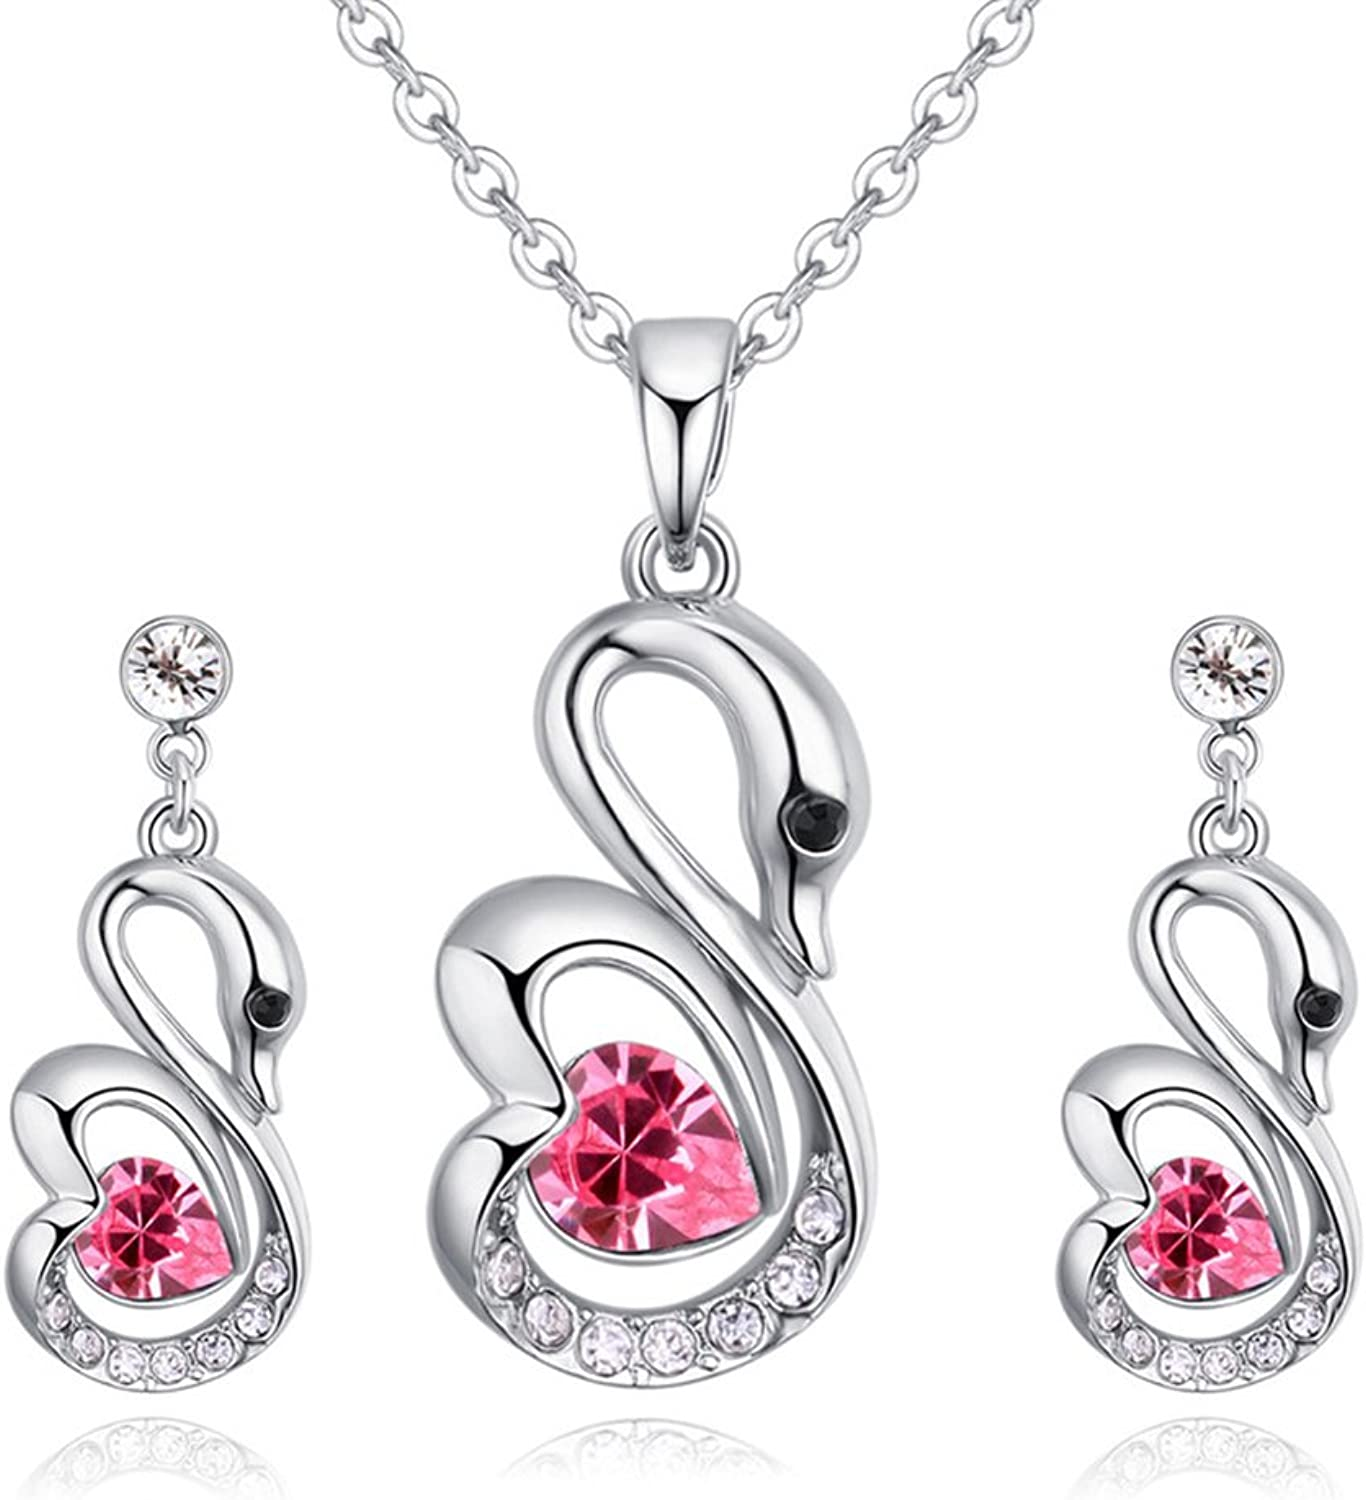 Bridal Jewelry Set Fashion Atmosphere Austrian Crystal Swan HeartShaped Necklace Jewelry Female,pink